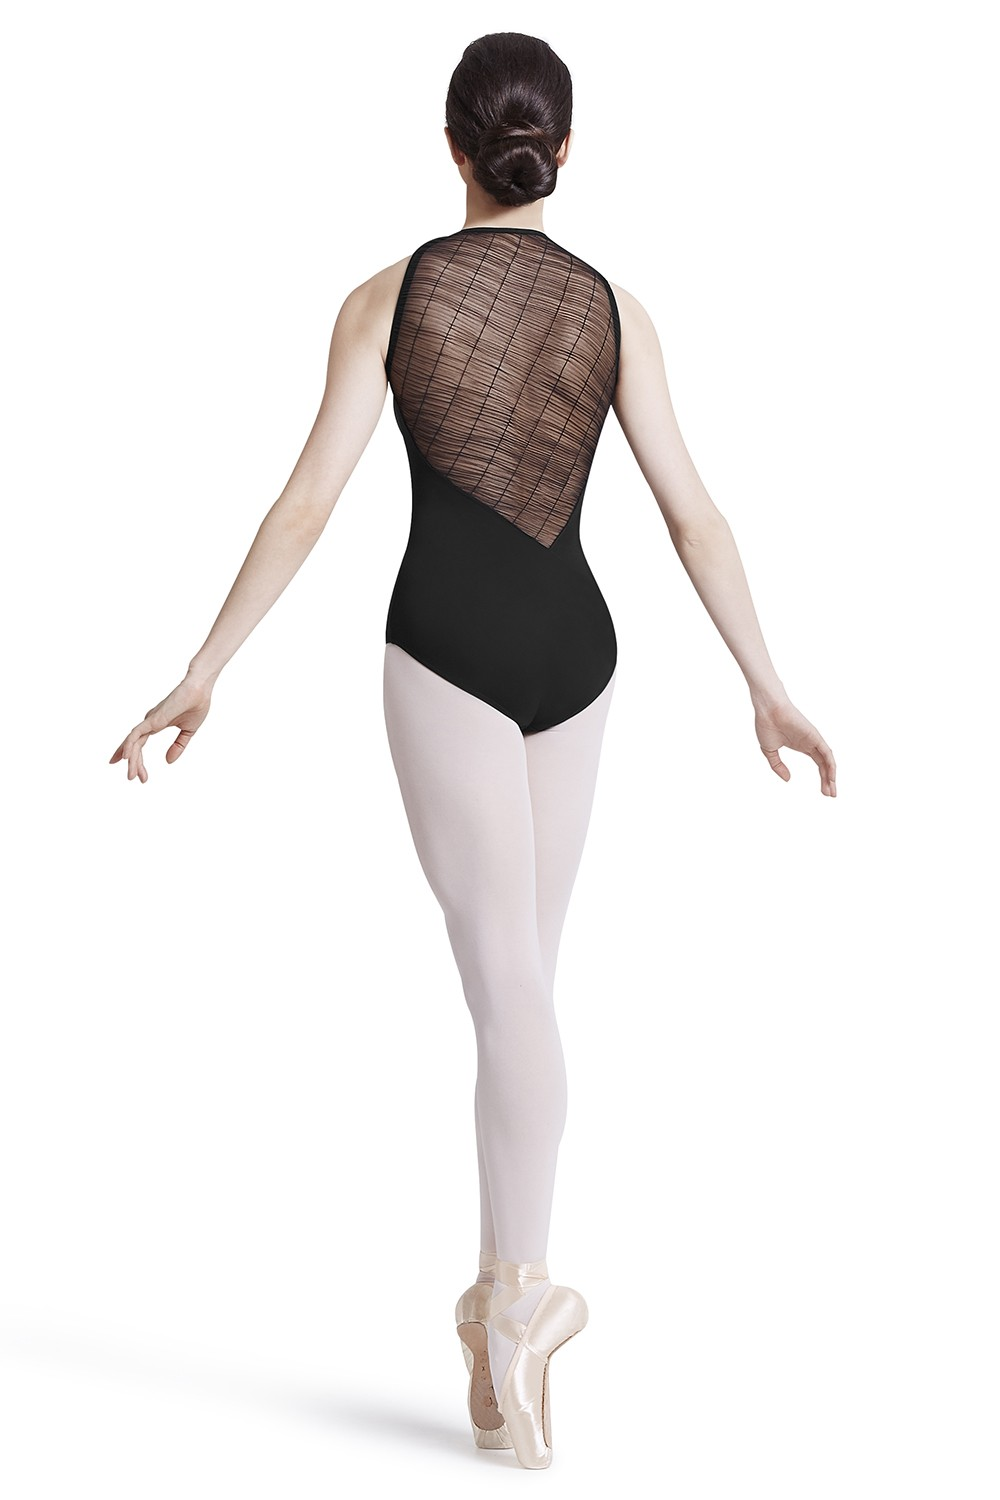 Asymmetrical Back Leotard Women's Dance Leotards